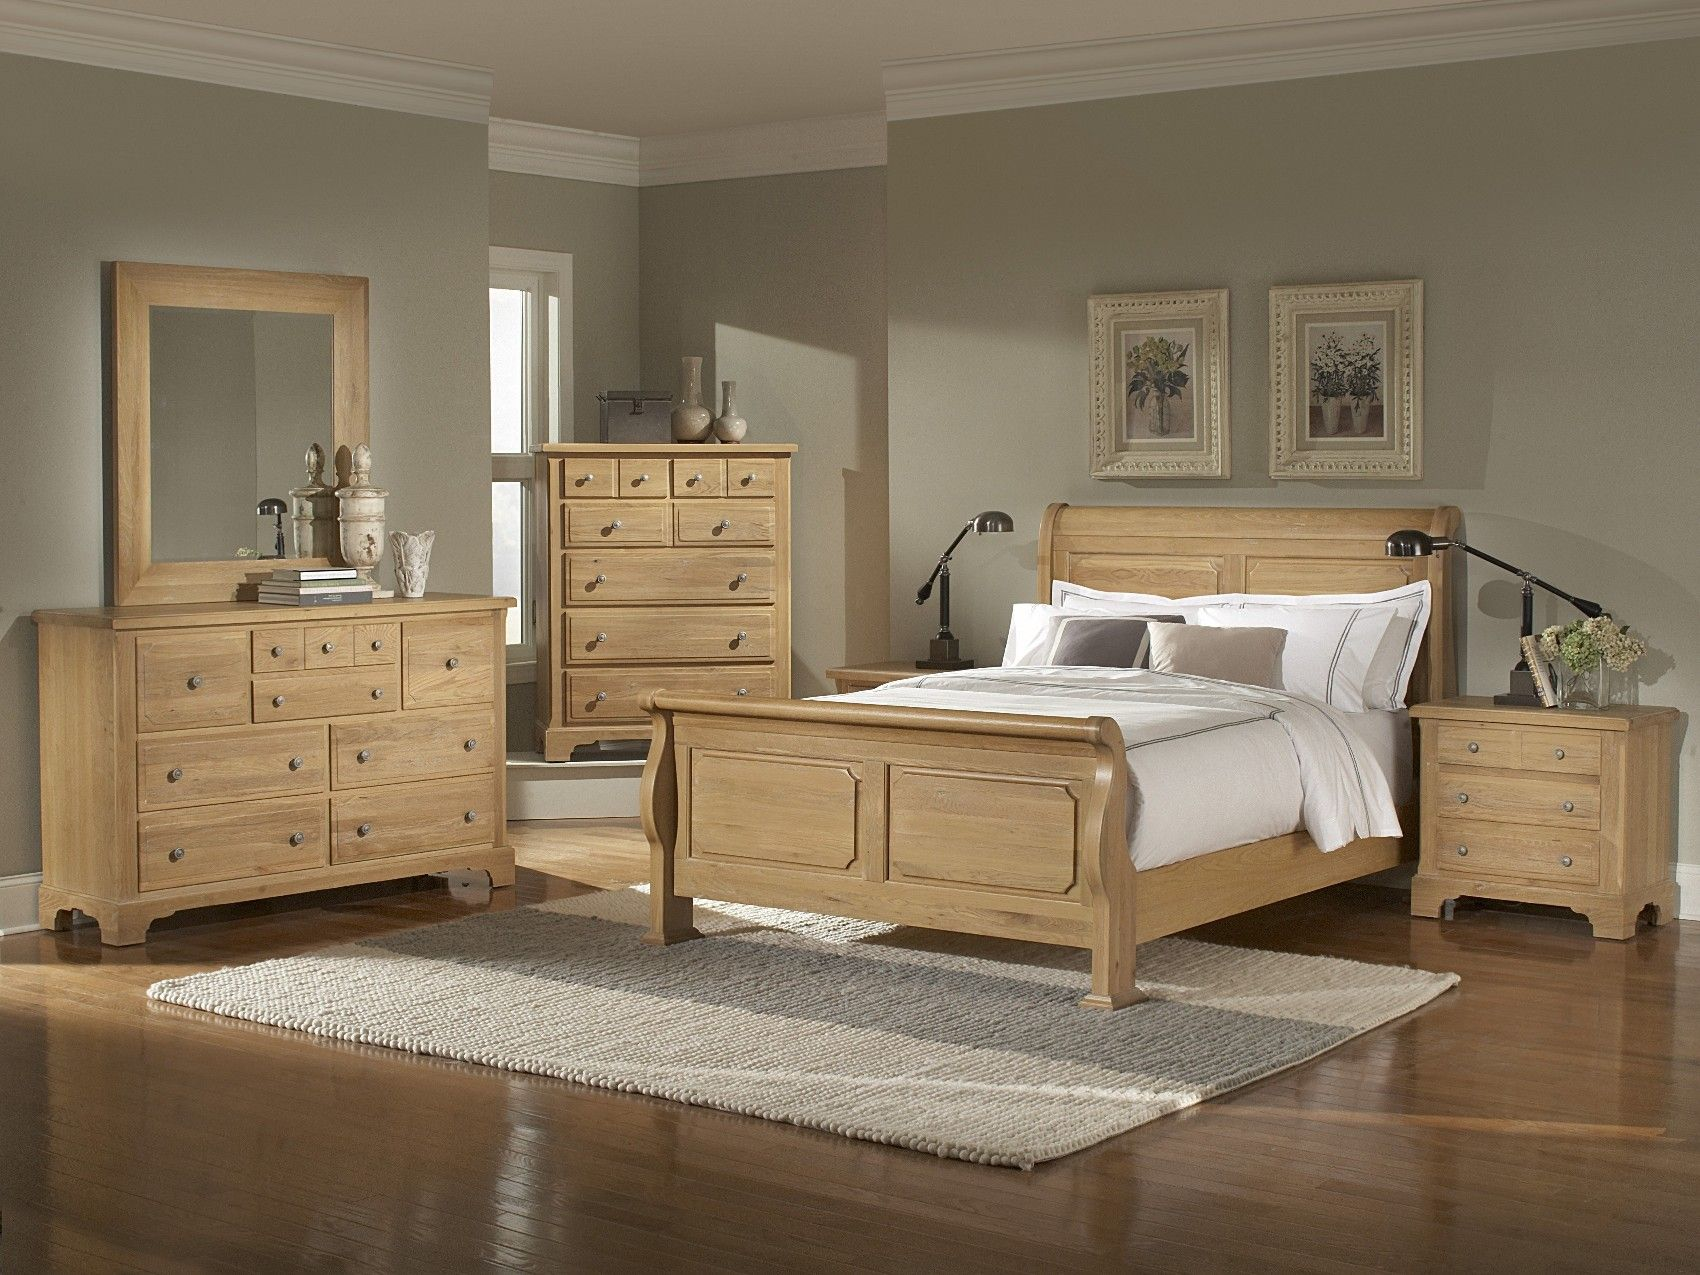 oak bedroom furniture sets |  Washed Oak Queen Sleigh Bedroom Group A at  NC Furniture Best Buys